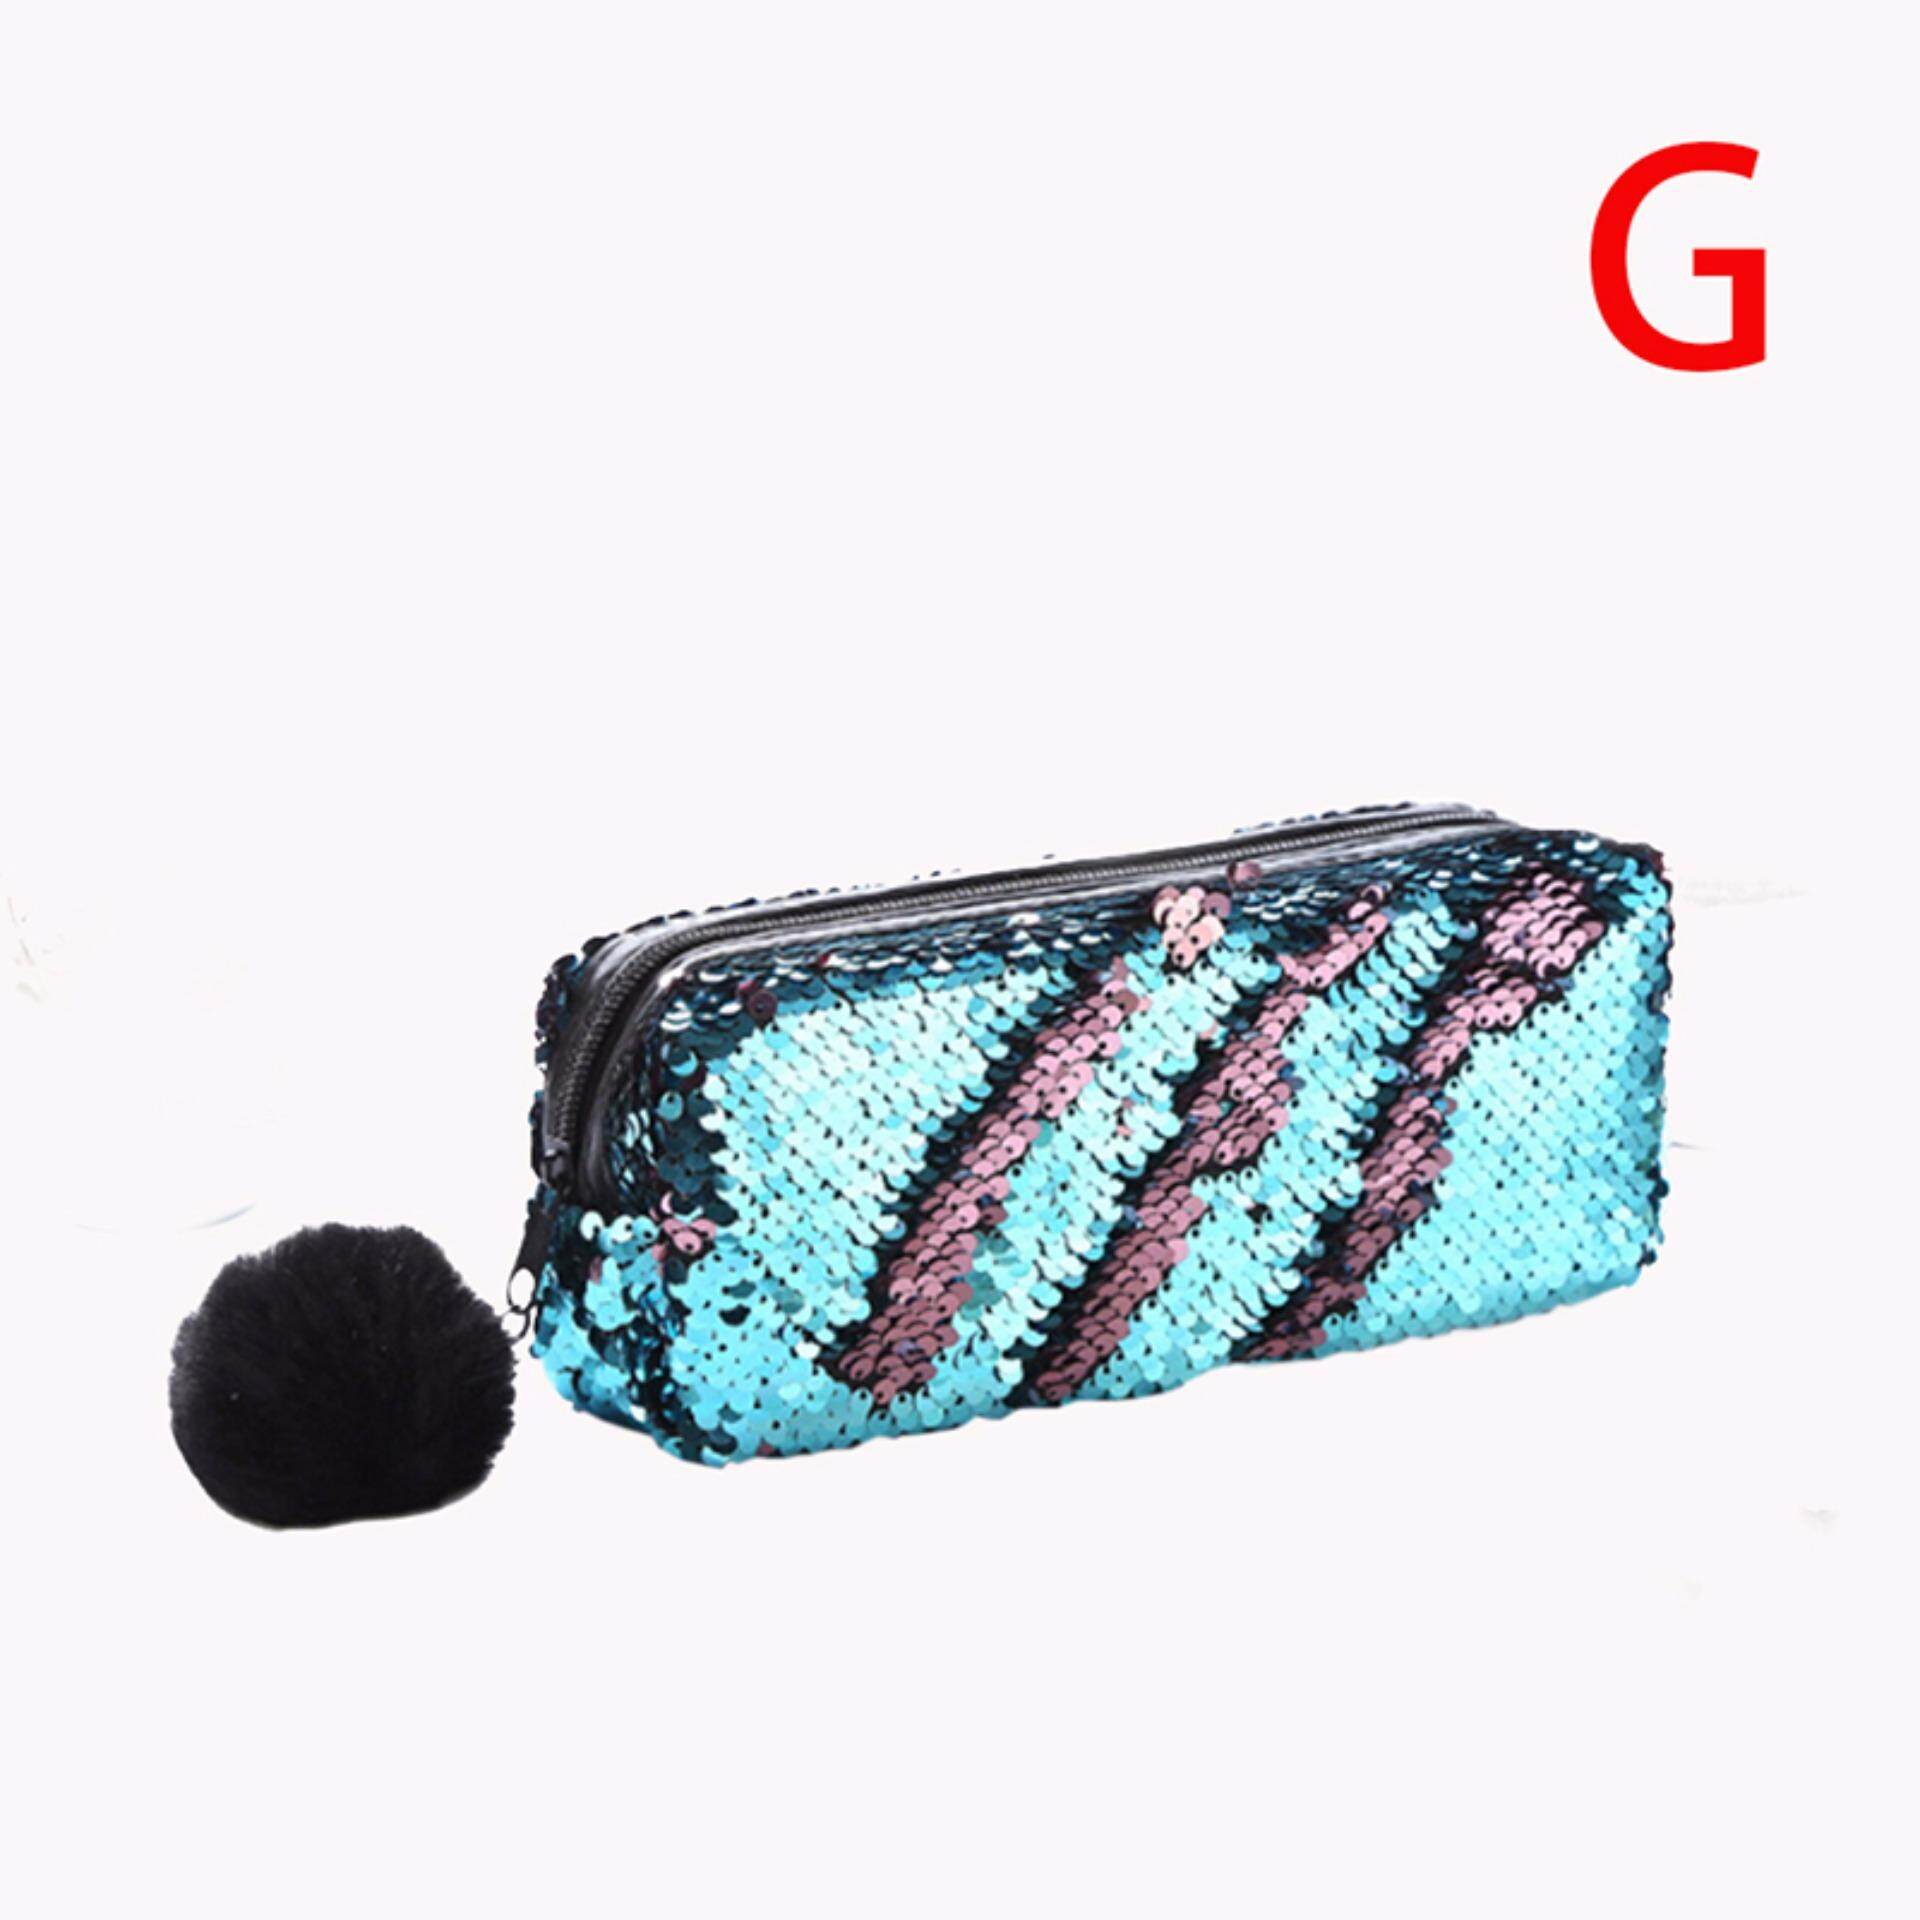 Butterfly House Women Mermaid Sequin Glitter Cosmetic Bag Pencil Box Coin Purse Makeup Case By Butterfly Flying.